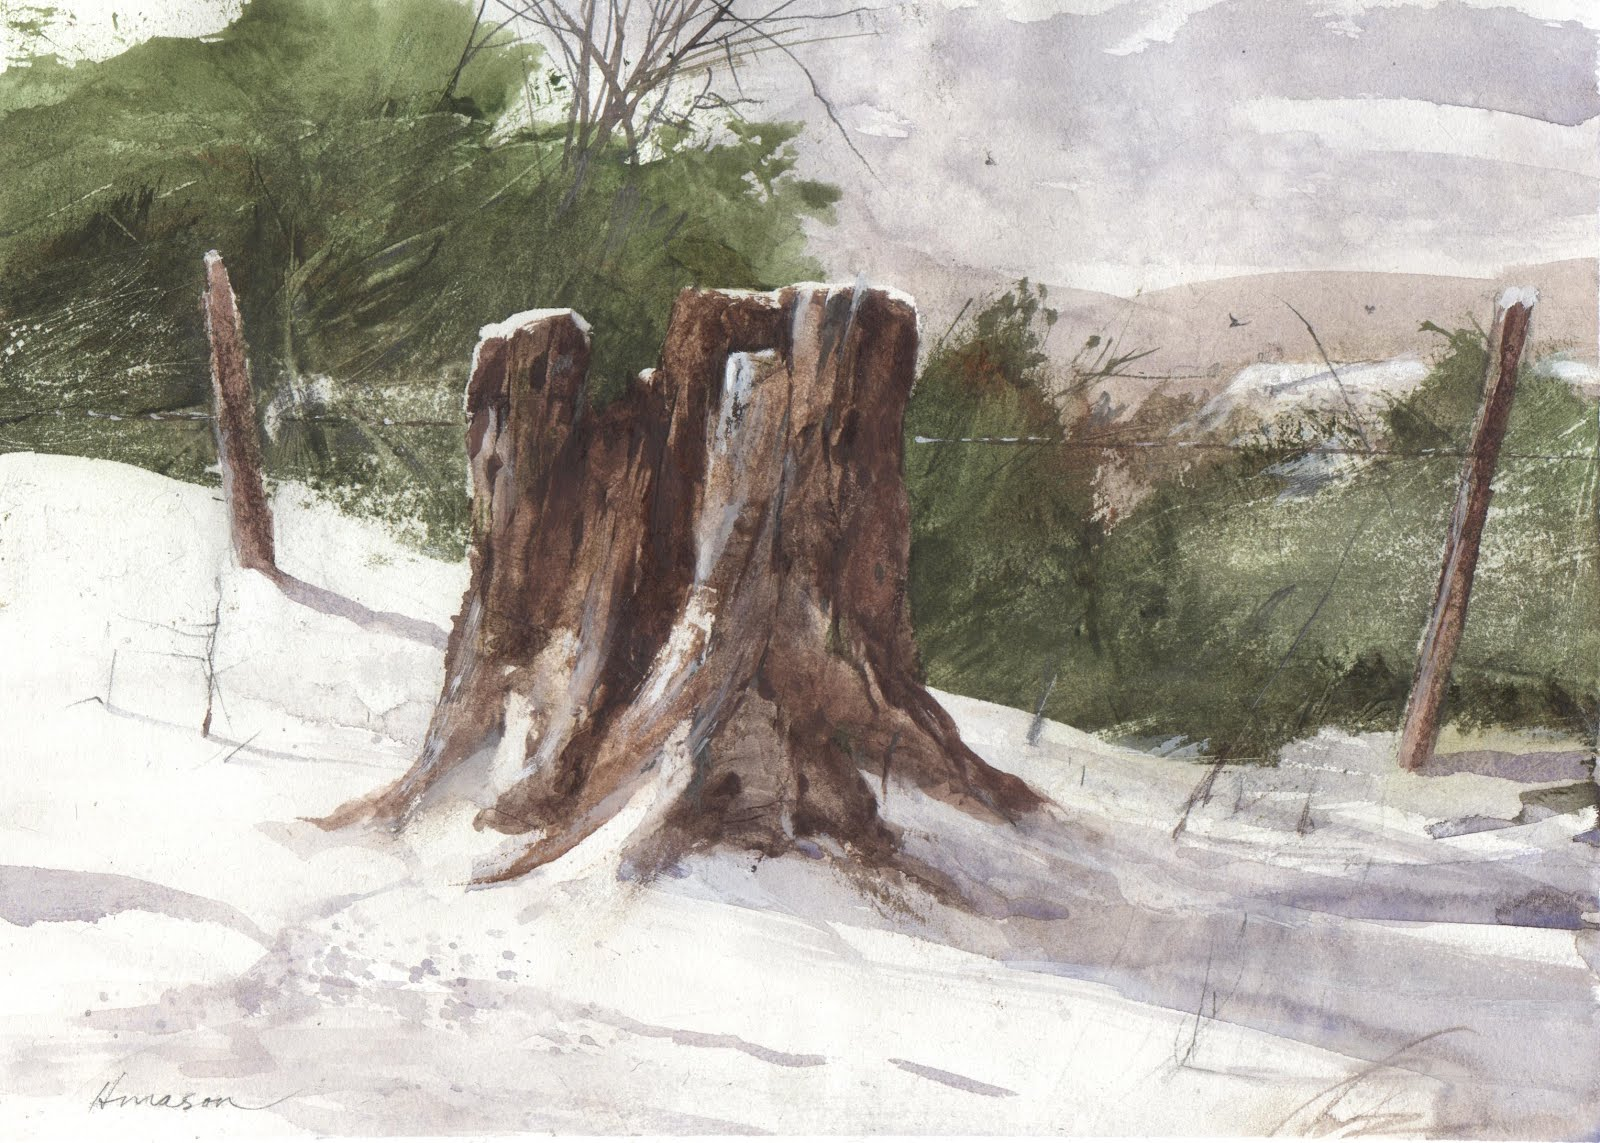 Snow Stump